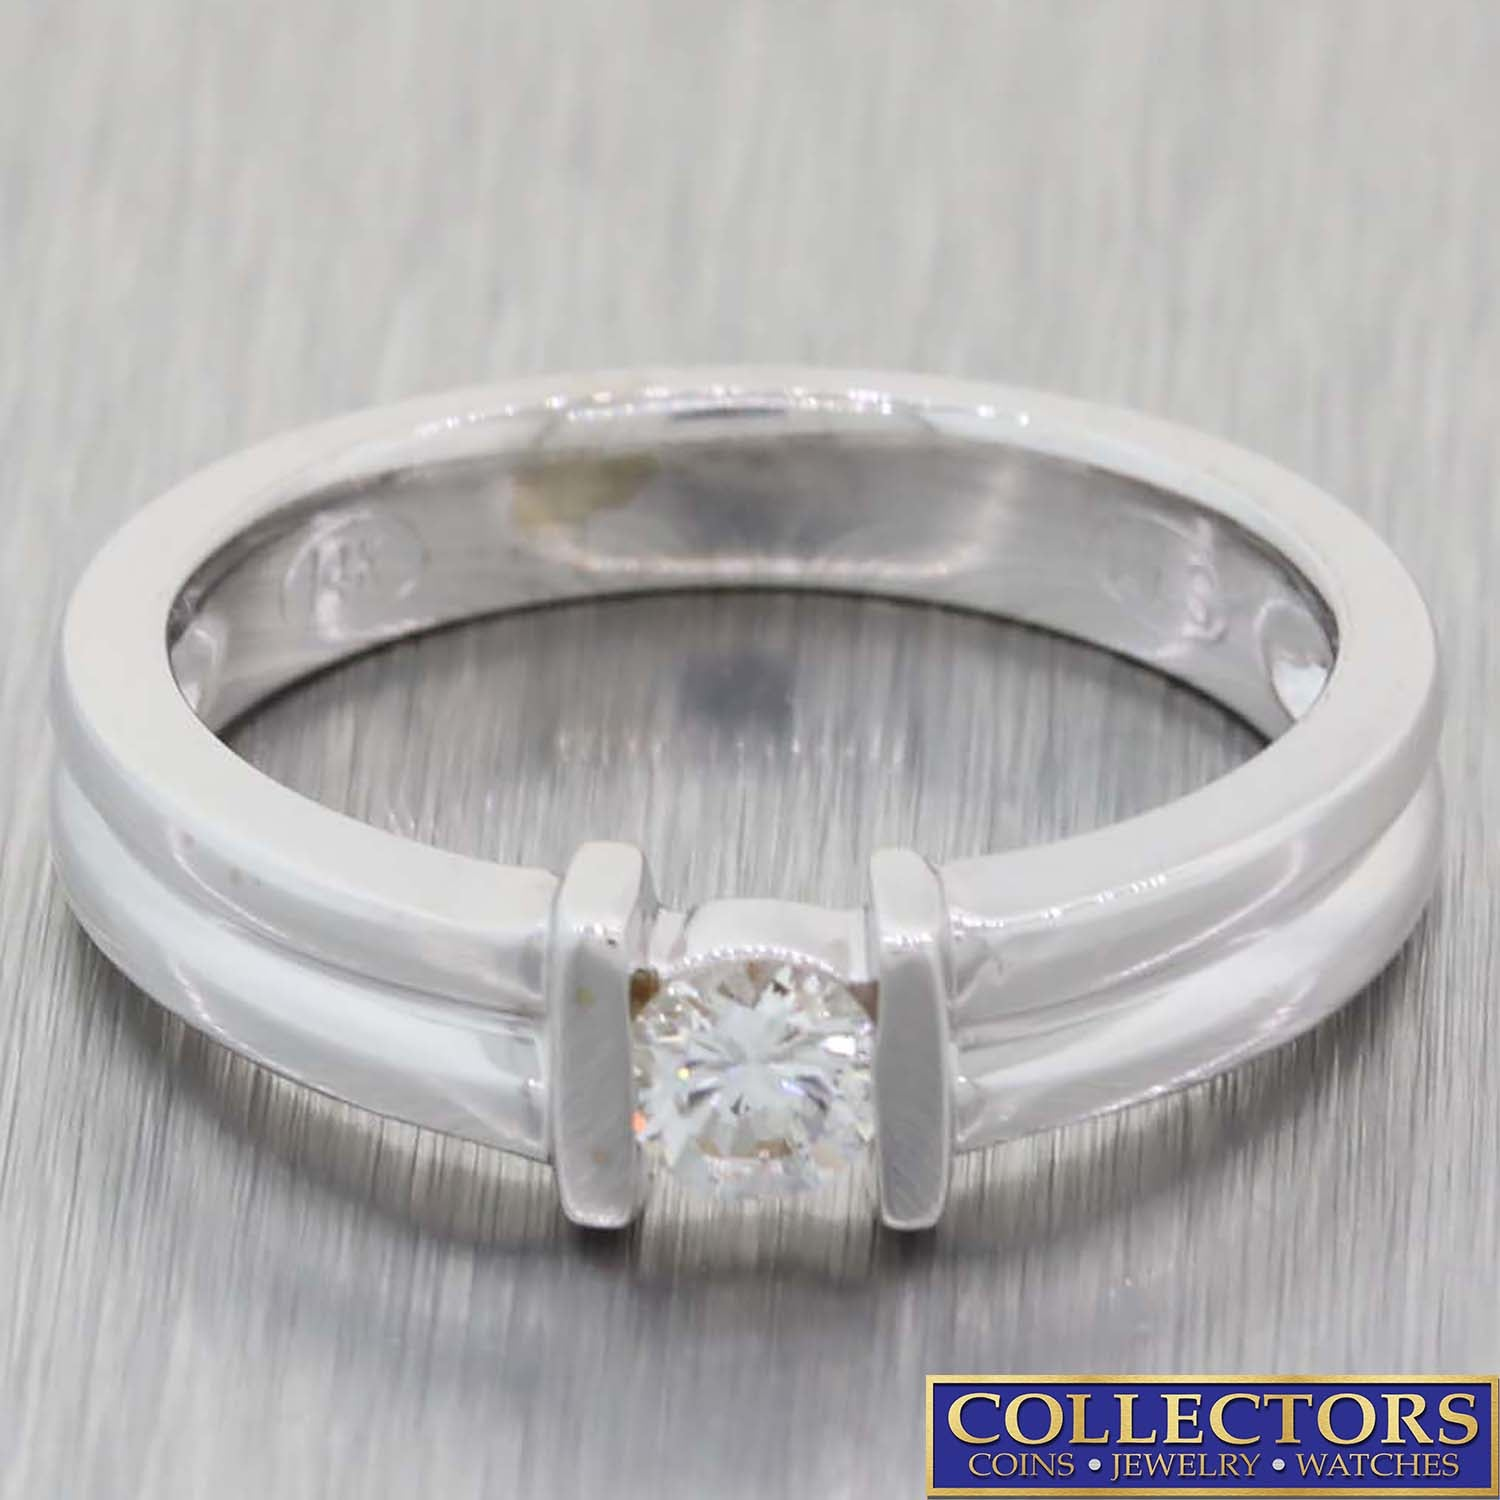 Vintage 14k White Gold .20ctw Tension Set Solitaire Diamond Band Ring L8